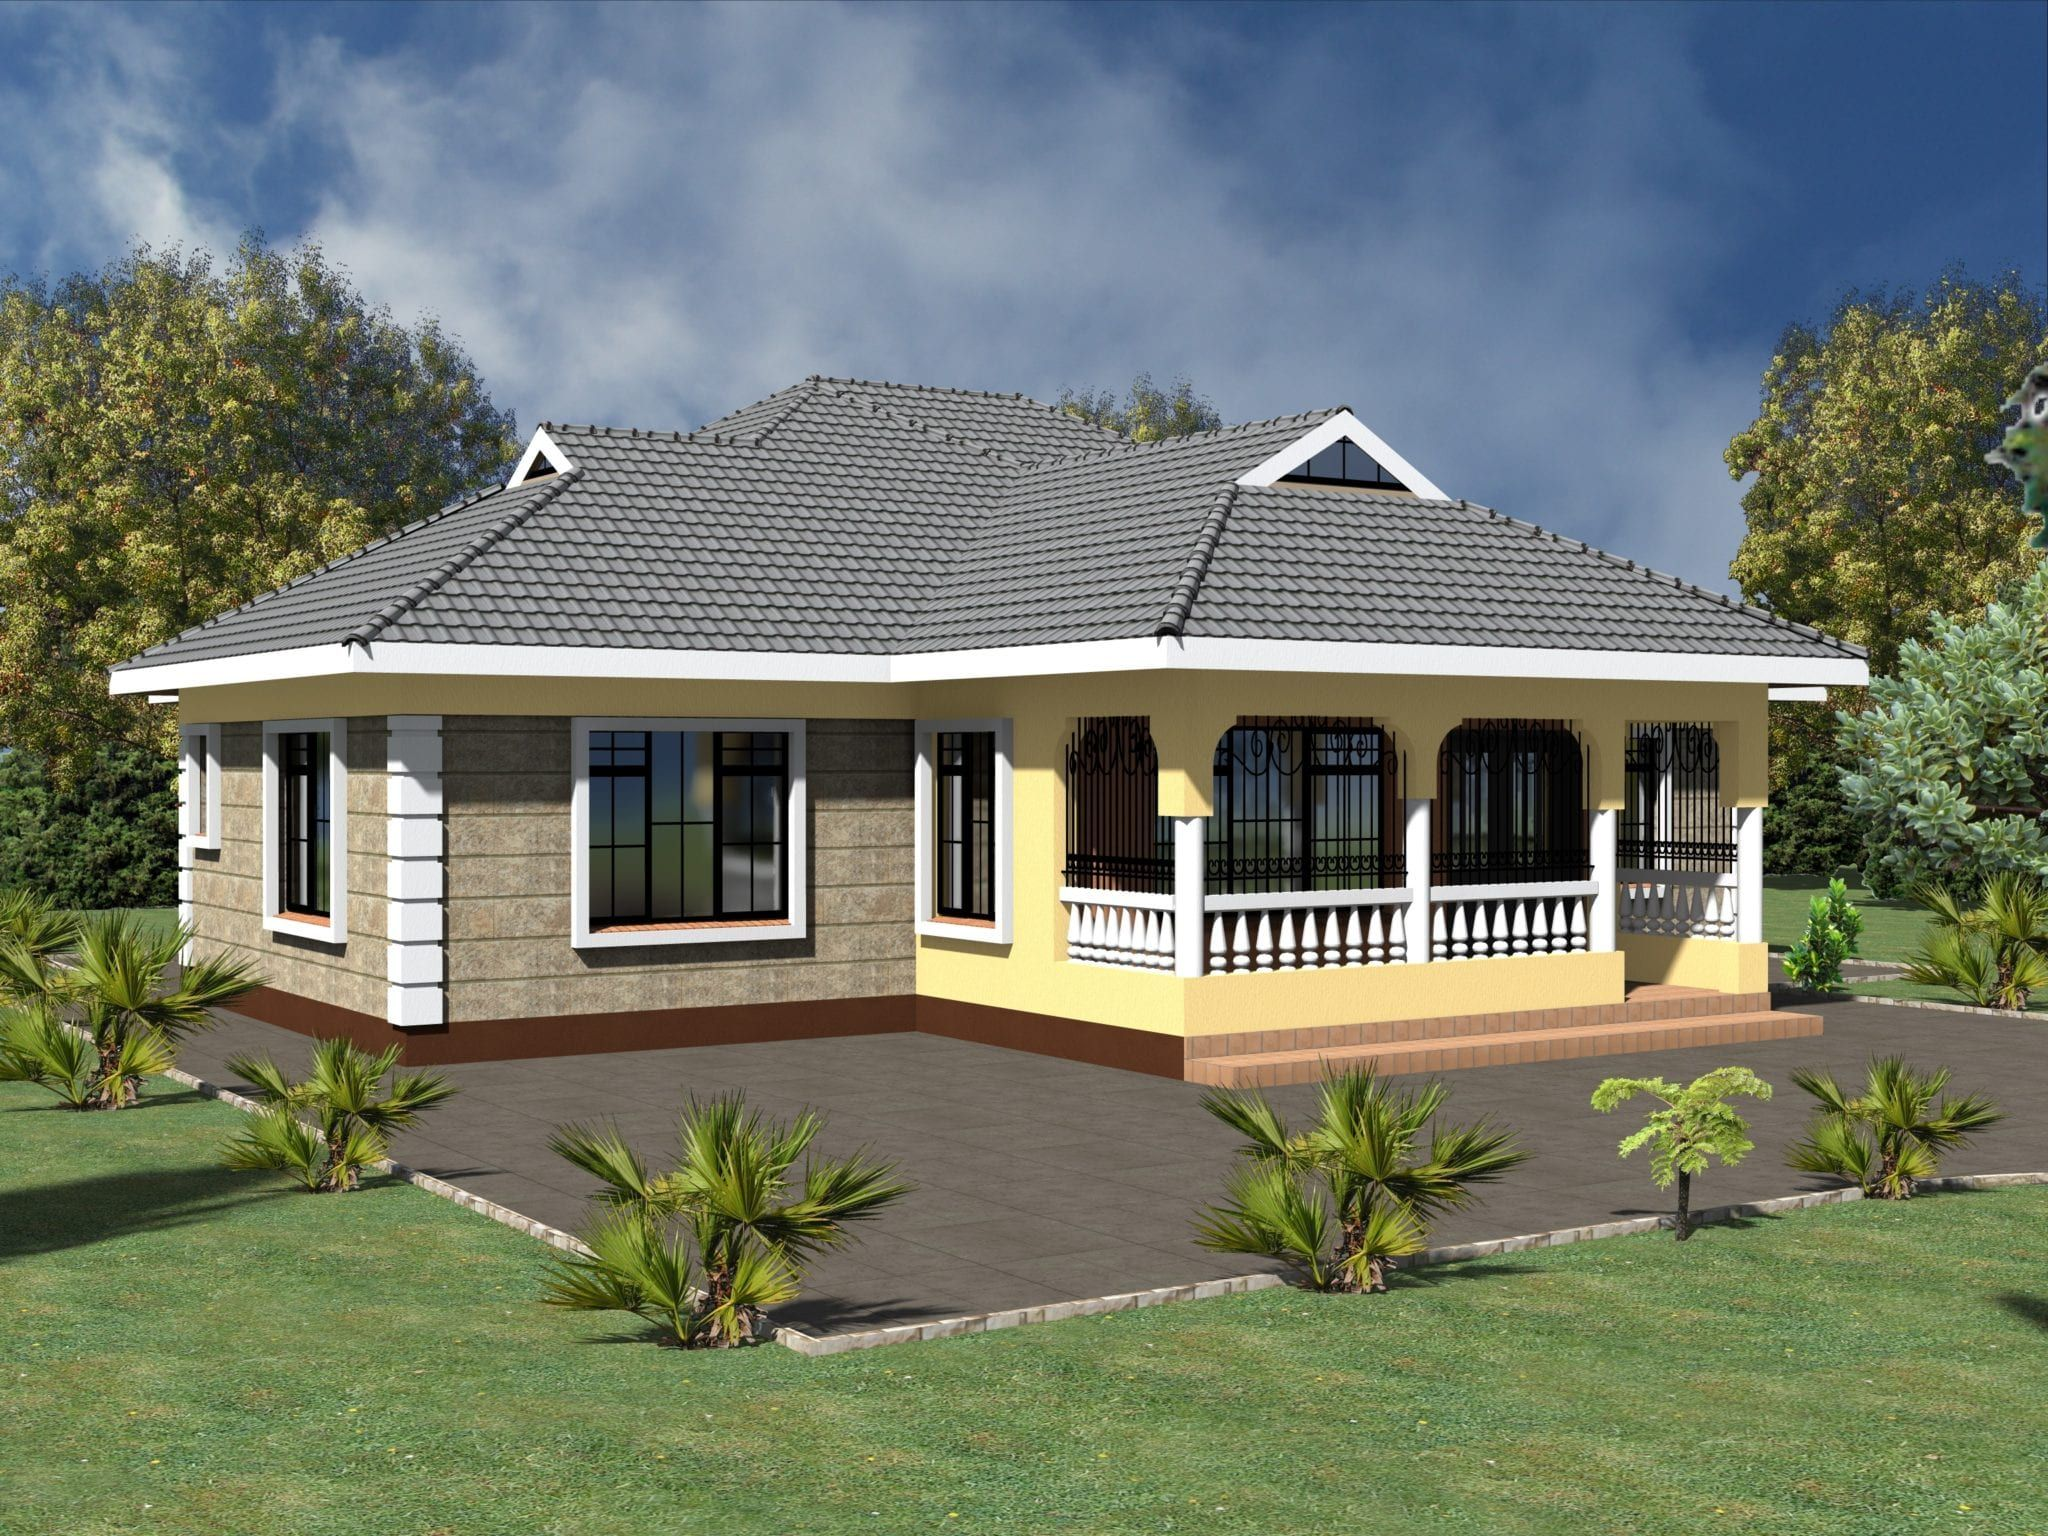 3 Bedrooms House Plans In Kenya Arts Bedroom And Designs Three Design Section 8 Houses Lrg 5 Three Bedroom House Plan Bedroom House Plans Modern Bungalow House